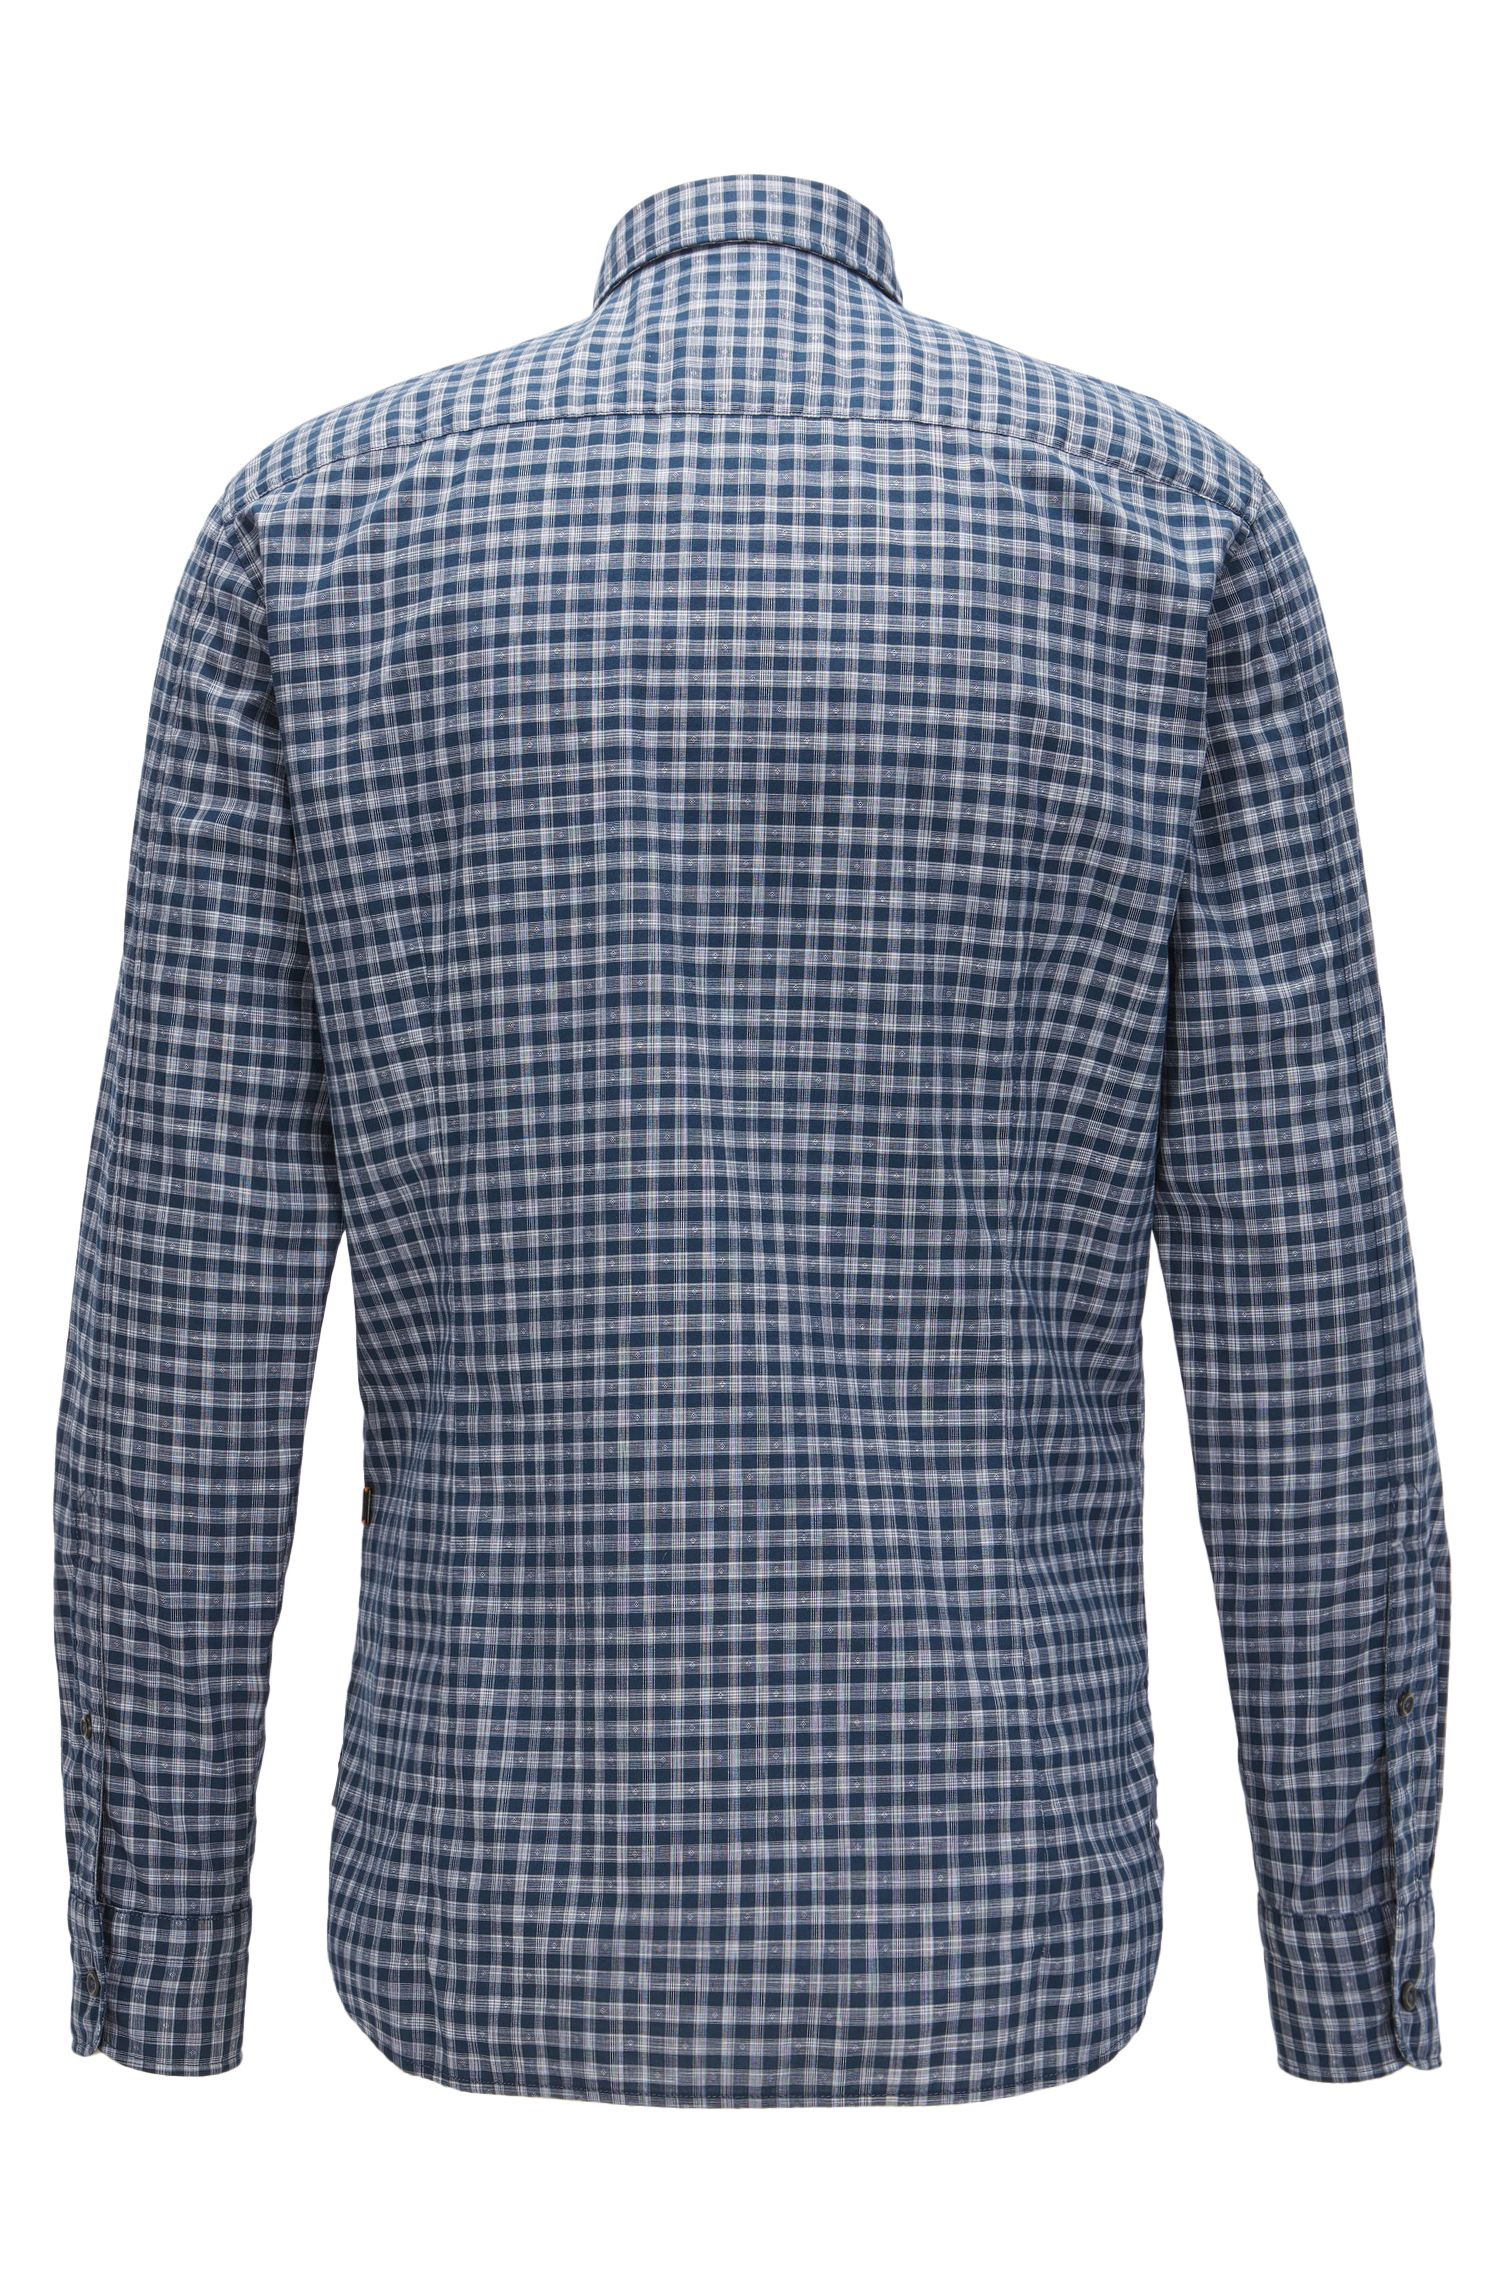 Vichy-check cotton shirt in a slim fit